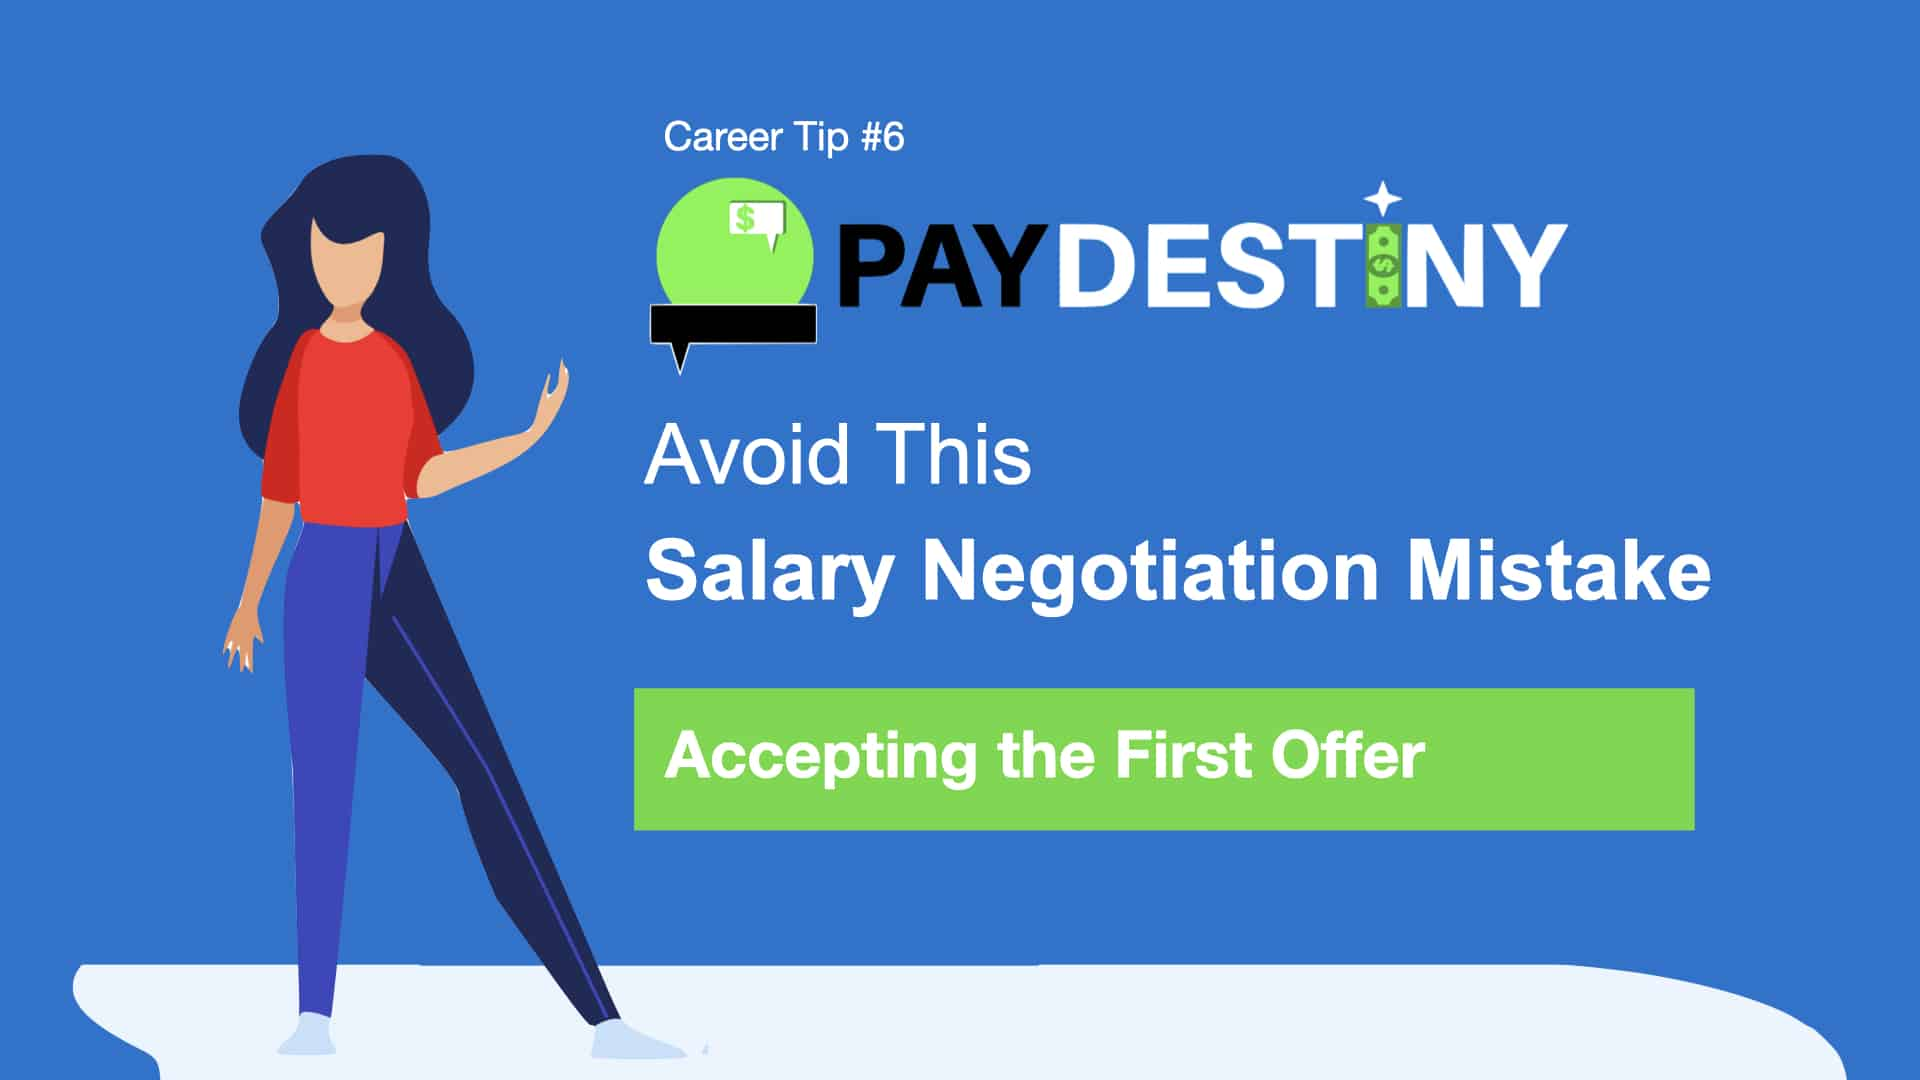 Salary Negotiation Mistake (Accepting the First Offer)